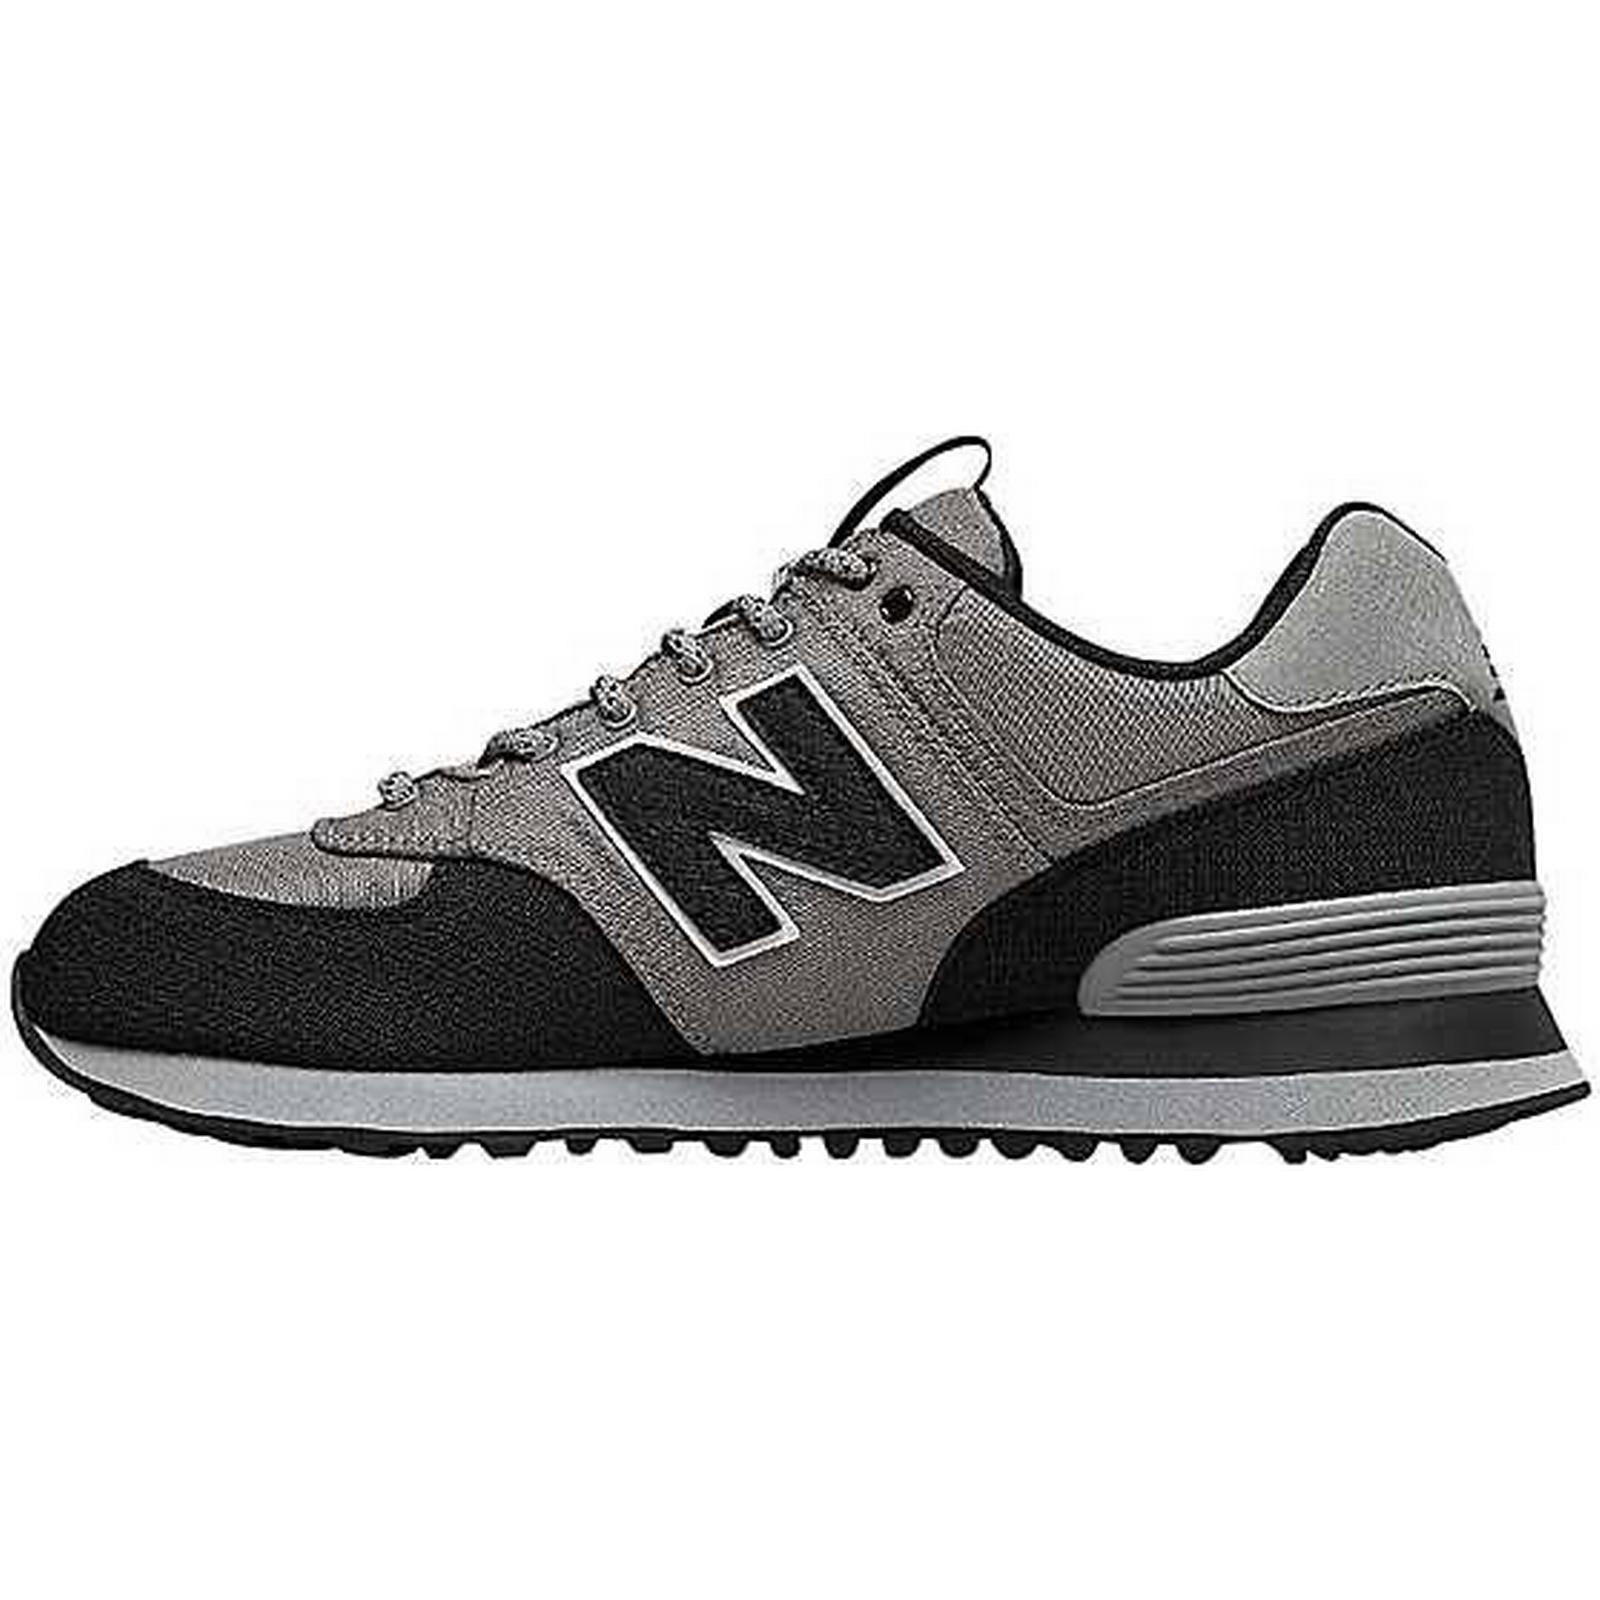 New Balance Cushioned Sports Trainers Price by New Balance/Gentleman/Lady/ Special Price Trainers 6d0666